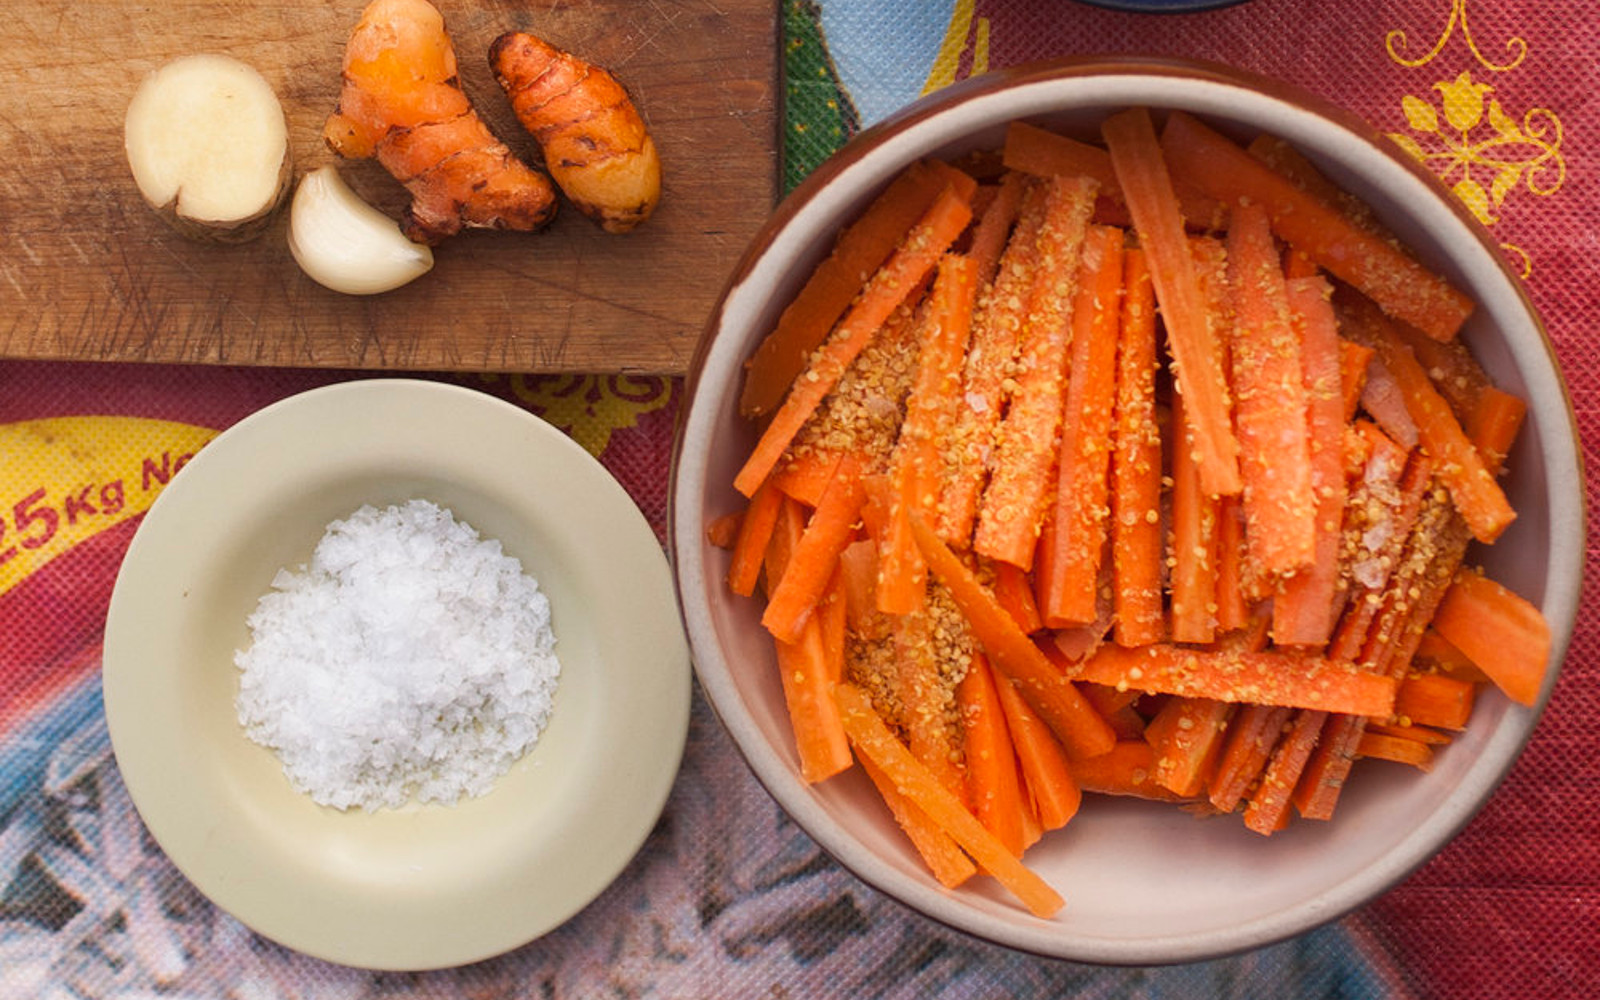 Fermented Carrots with Turmeric and Mustard